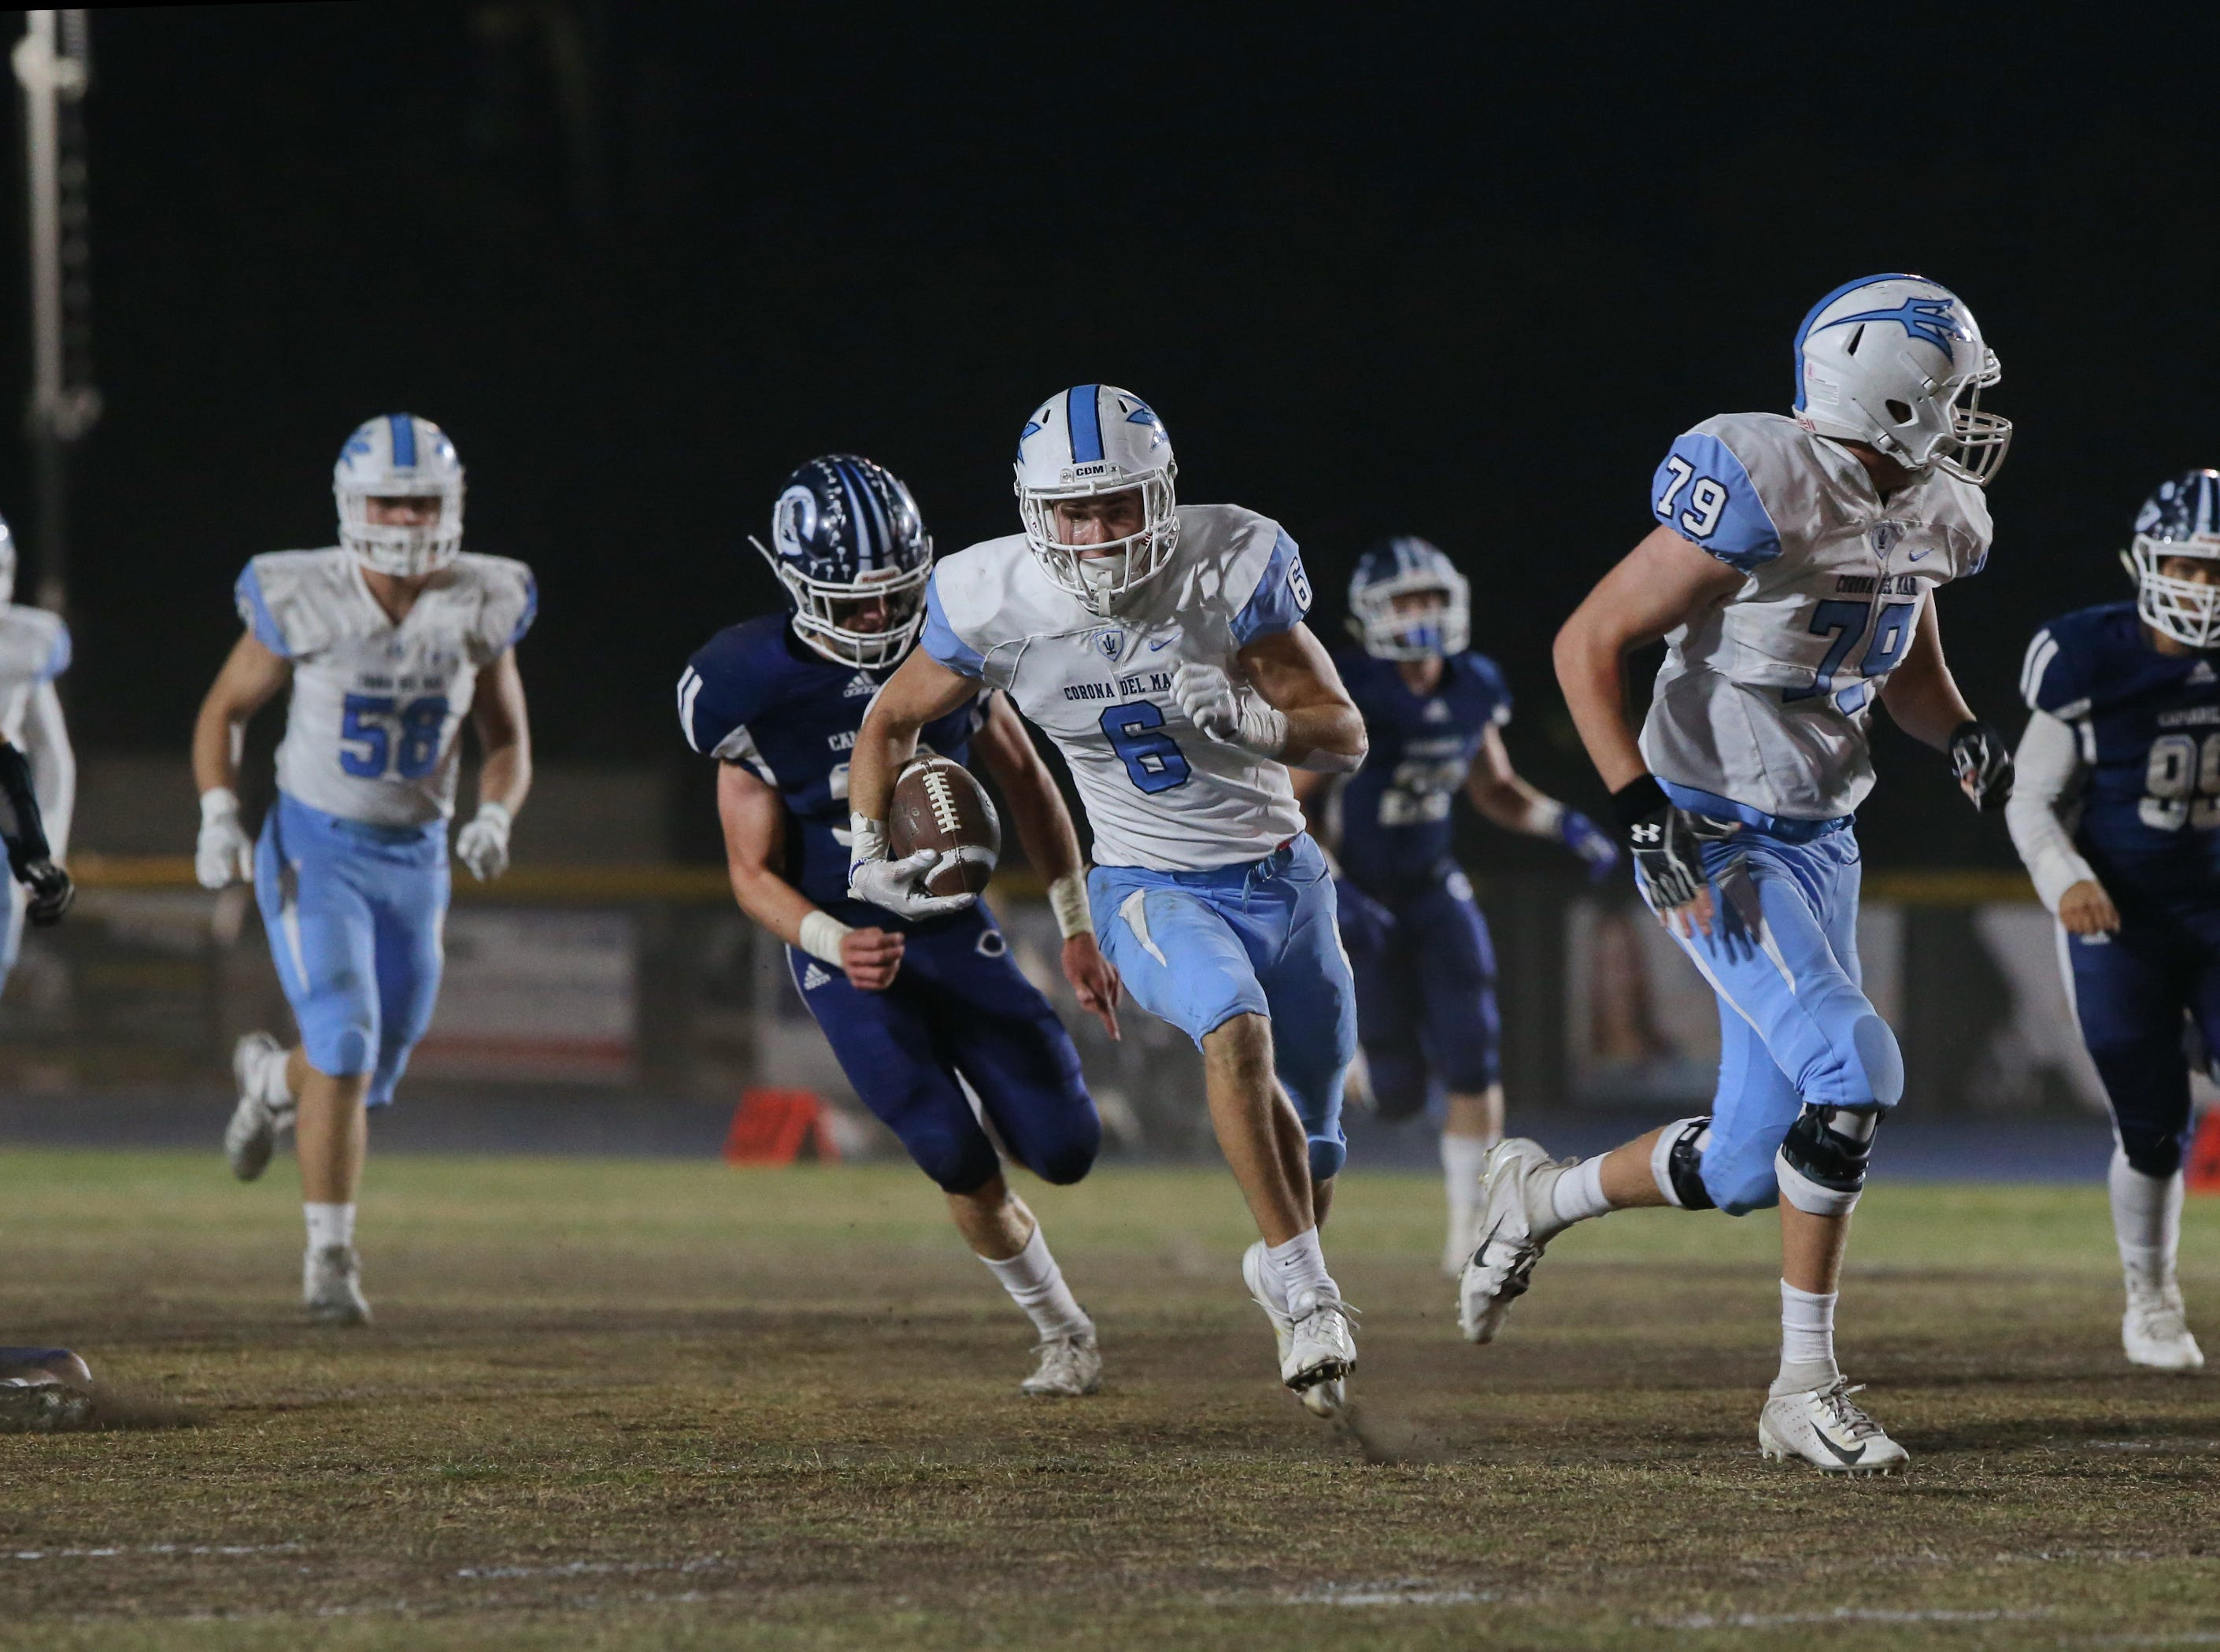 Corona del Mar's John Humphreys finds an opening in the Camarillo defense during Friday night's Division 4 semifinal.